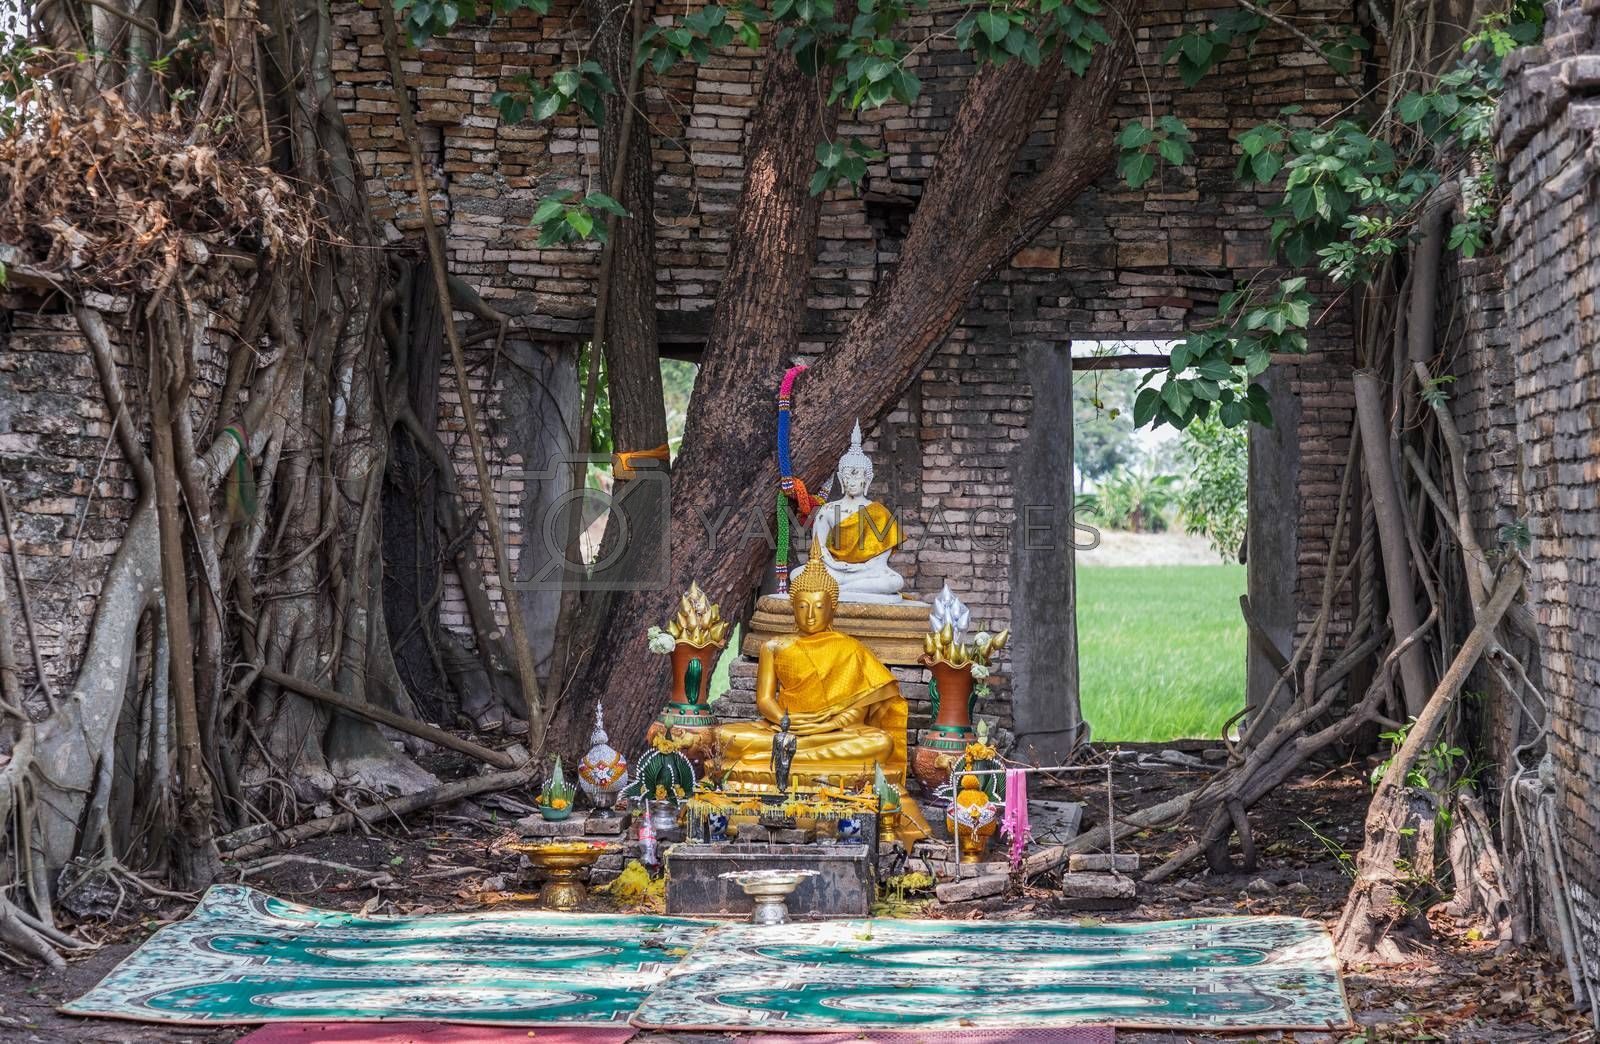 Nakhon Nayok, Thailand - Mar 21, 2020 : Many big tree roots covering The ancient church without roof inside there is a Buddha statue at The ancient of a 200 year old church. Wat Pah Krathum. Selective focus.